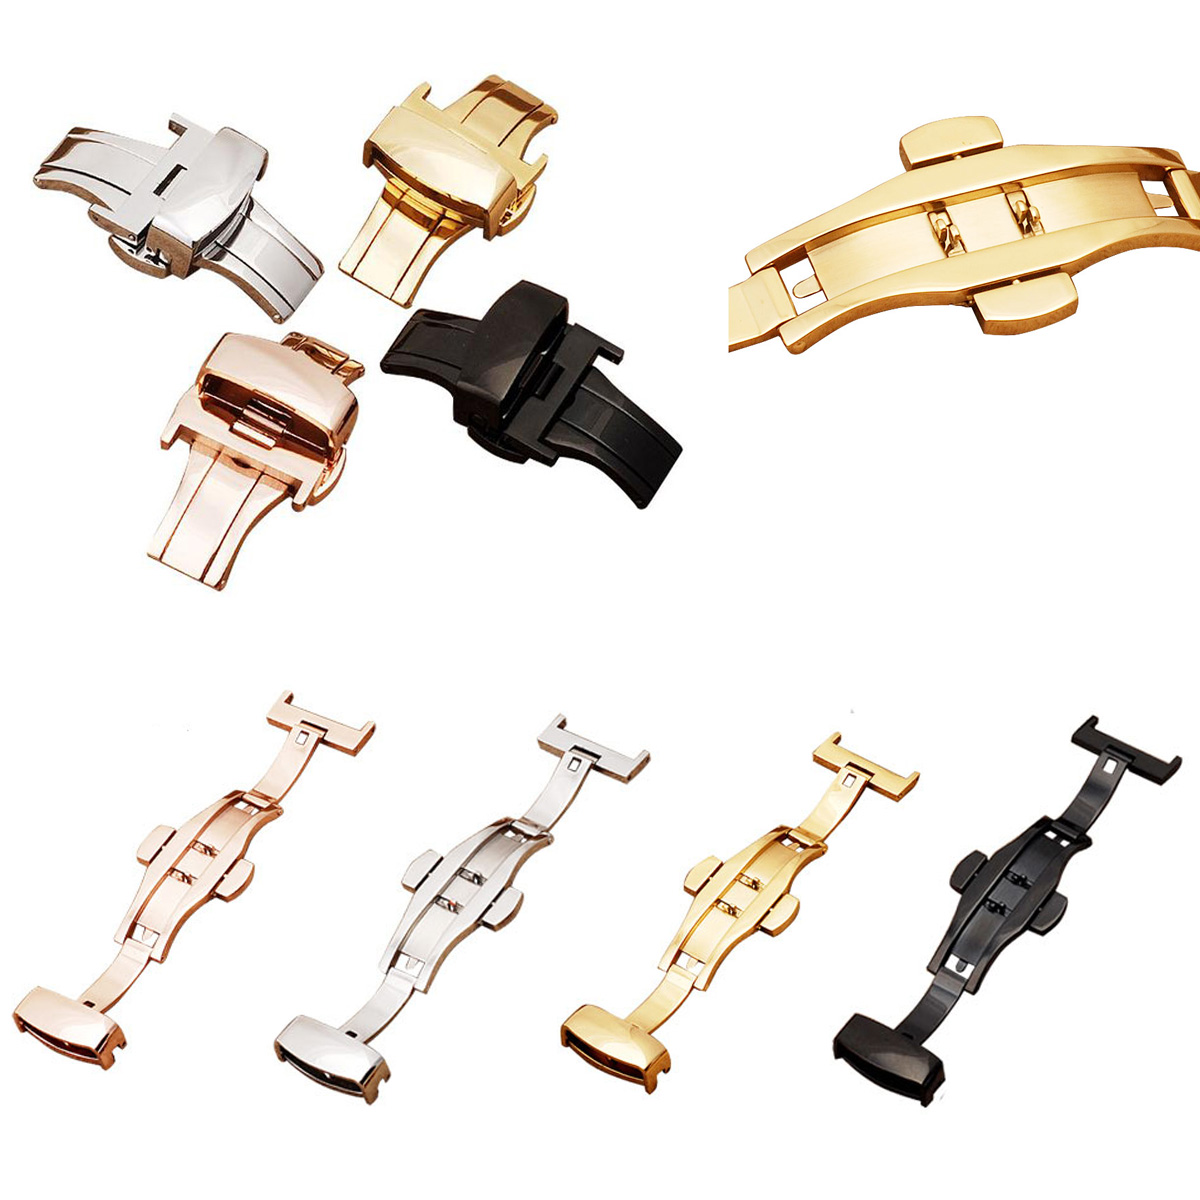 12 14 16 18 20 22 24mm Silver Black Gold Rose Gold Deployment BUTTERFLY CLASP Buckle Watch Band Double Push Button Buckle zlimsn 20mm double push button deployment clasp silver gold black rose gold stainless steel watch metal buckle relojes hombre